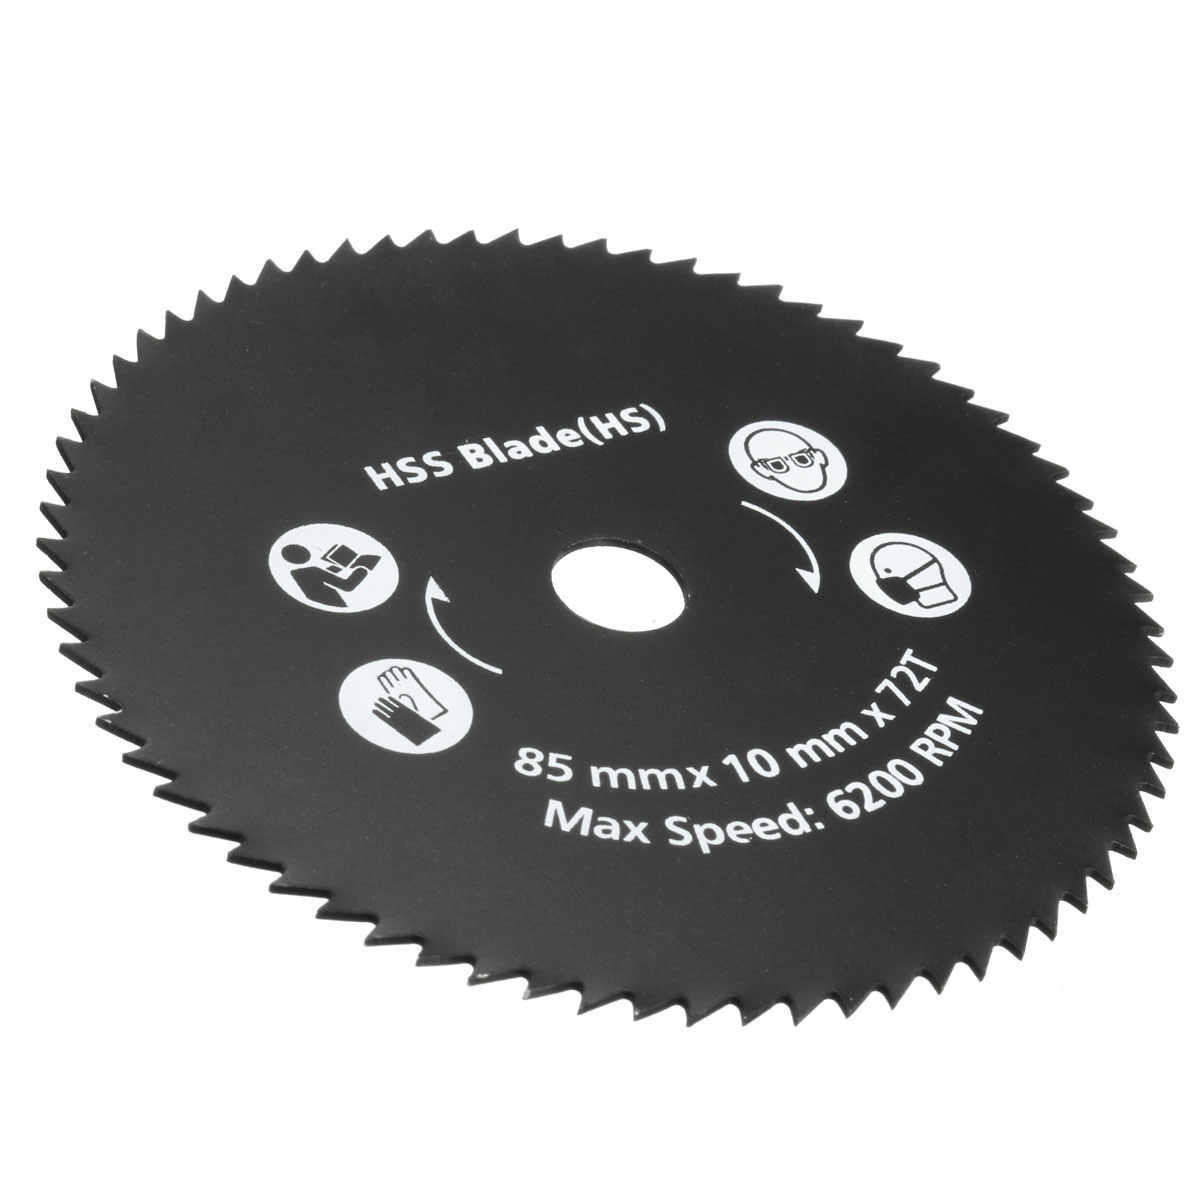 Dropshipping 1PC 85mm 72T HSS Circular Saw Blade Cutting Disc Wheel For Worx WorxSaw Wood Metal Working Tools Saw Blade